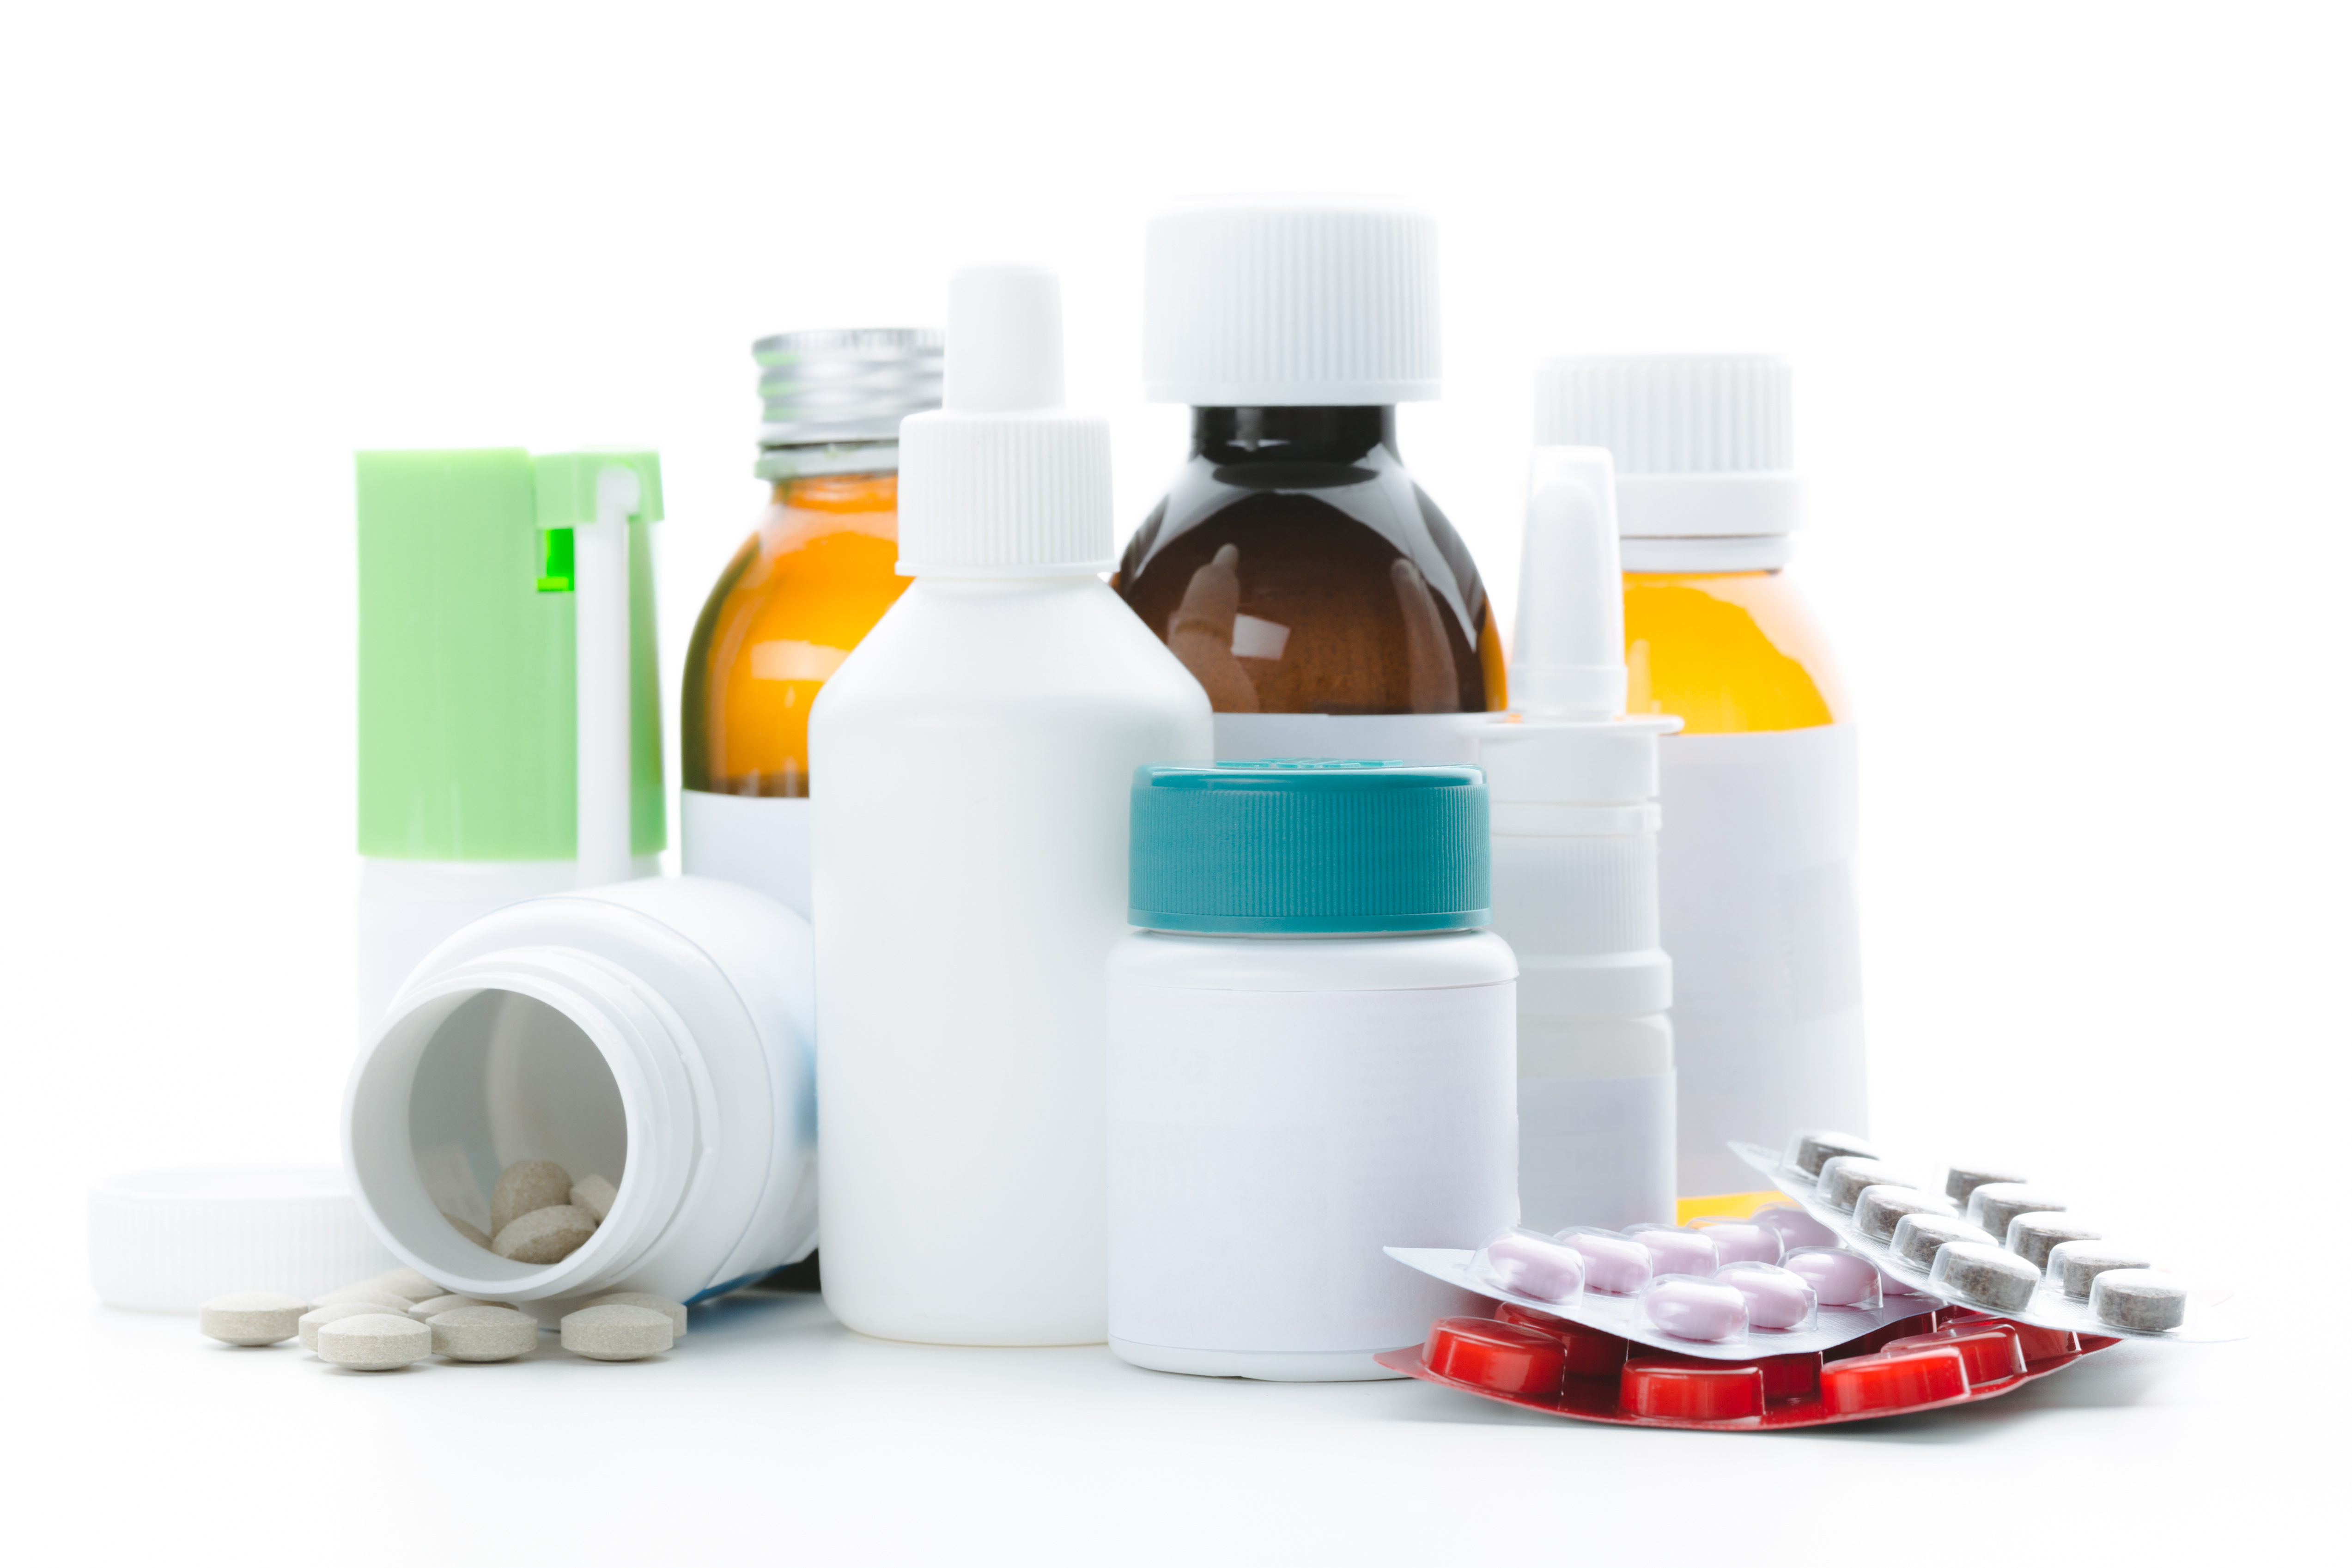 Plastic: pharma's friend or foe?